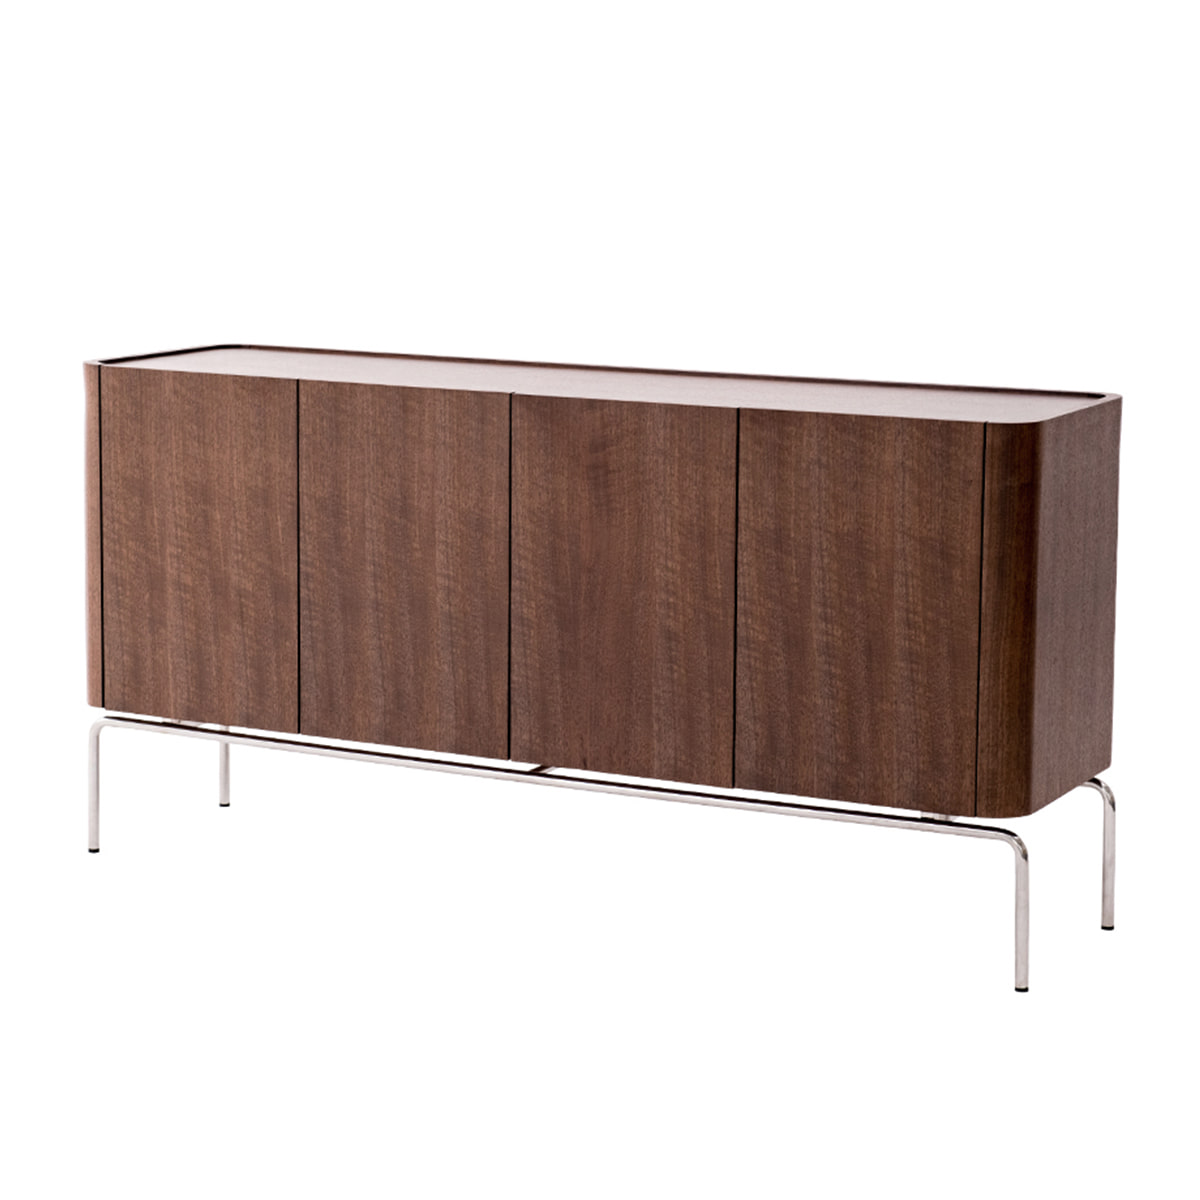 LINEA SIDE BOARD WALNUT 1600